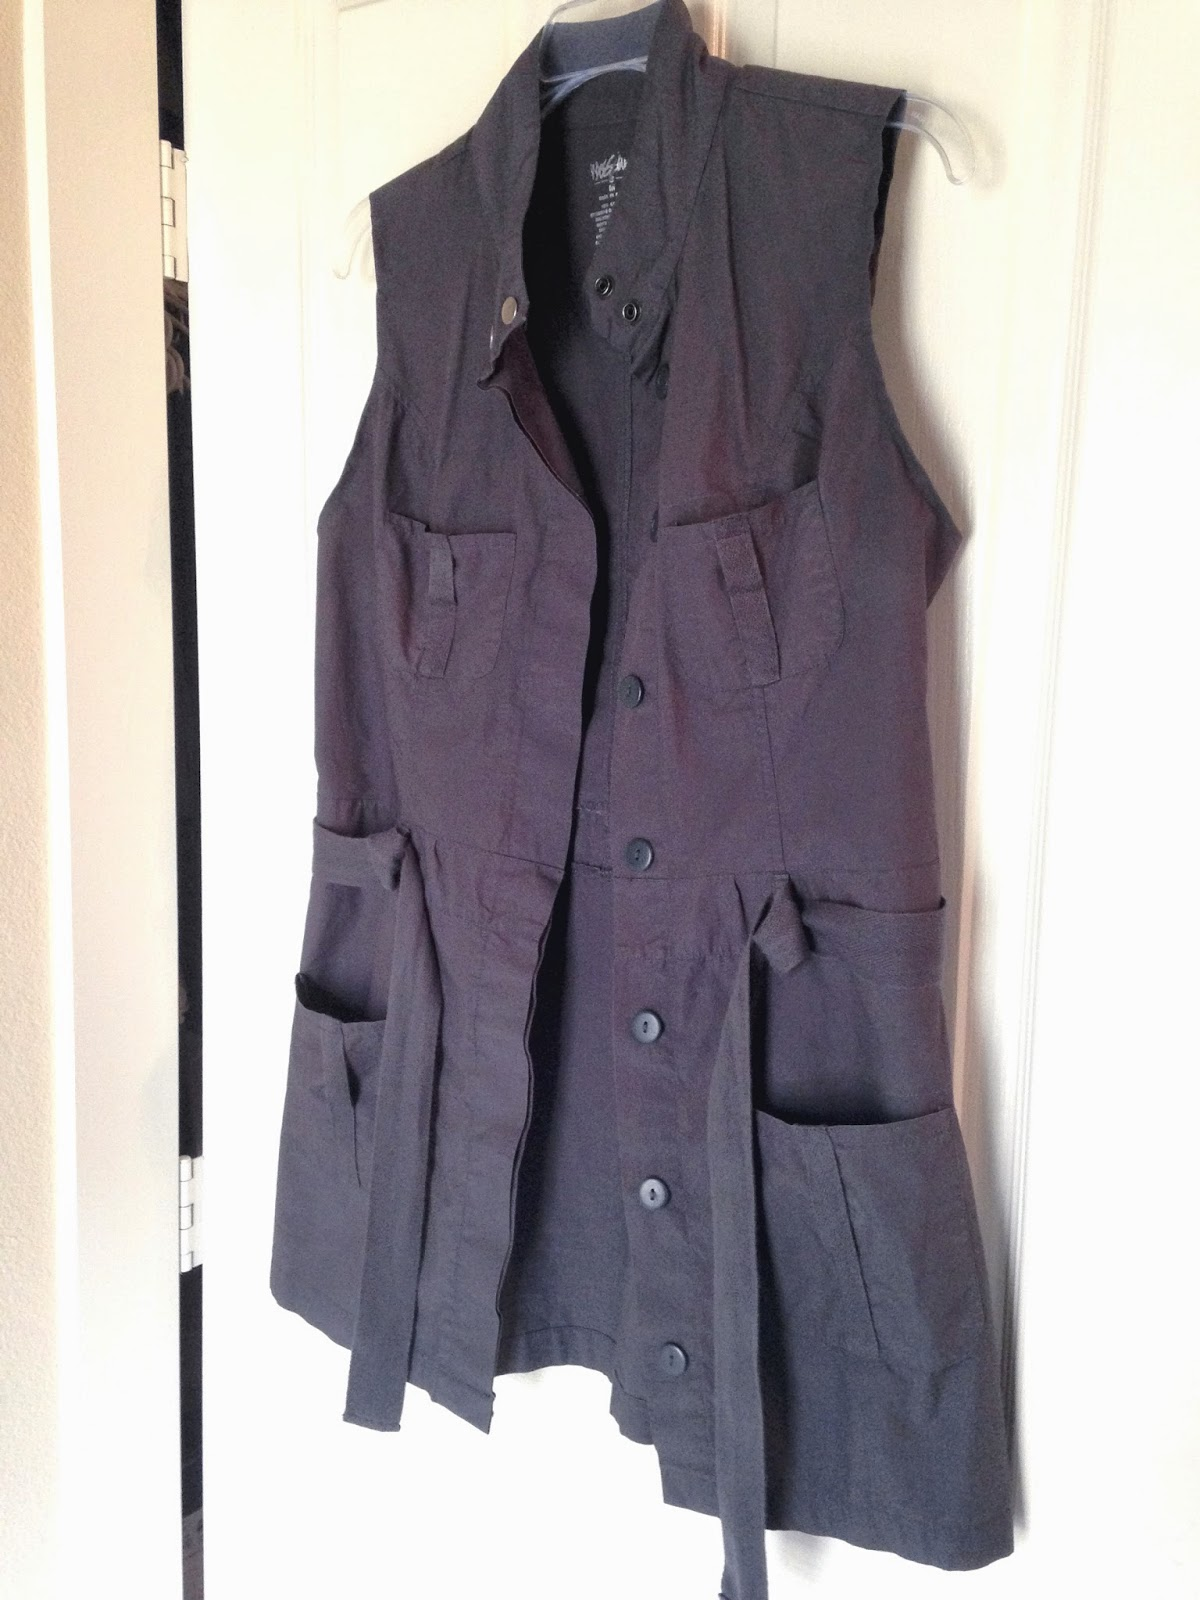 Ulterior Alterations: Refashioned Utility Vest Open